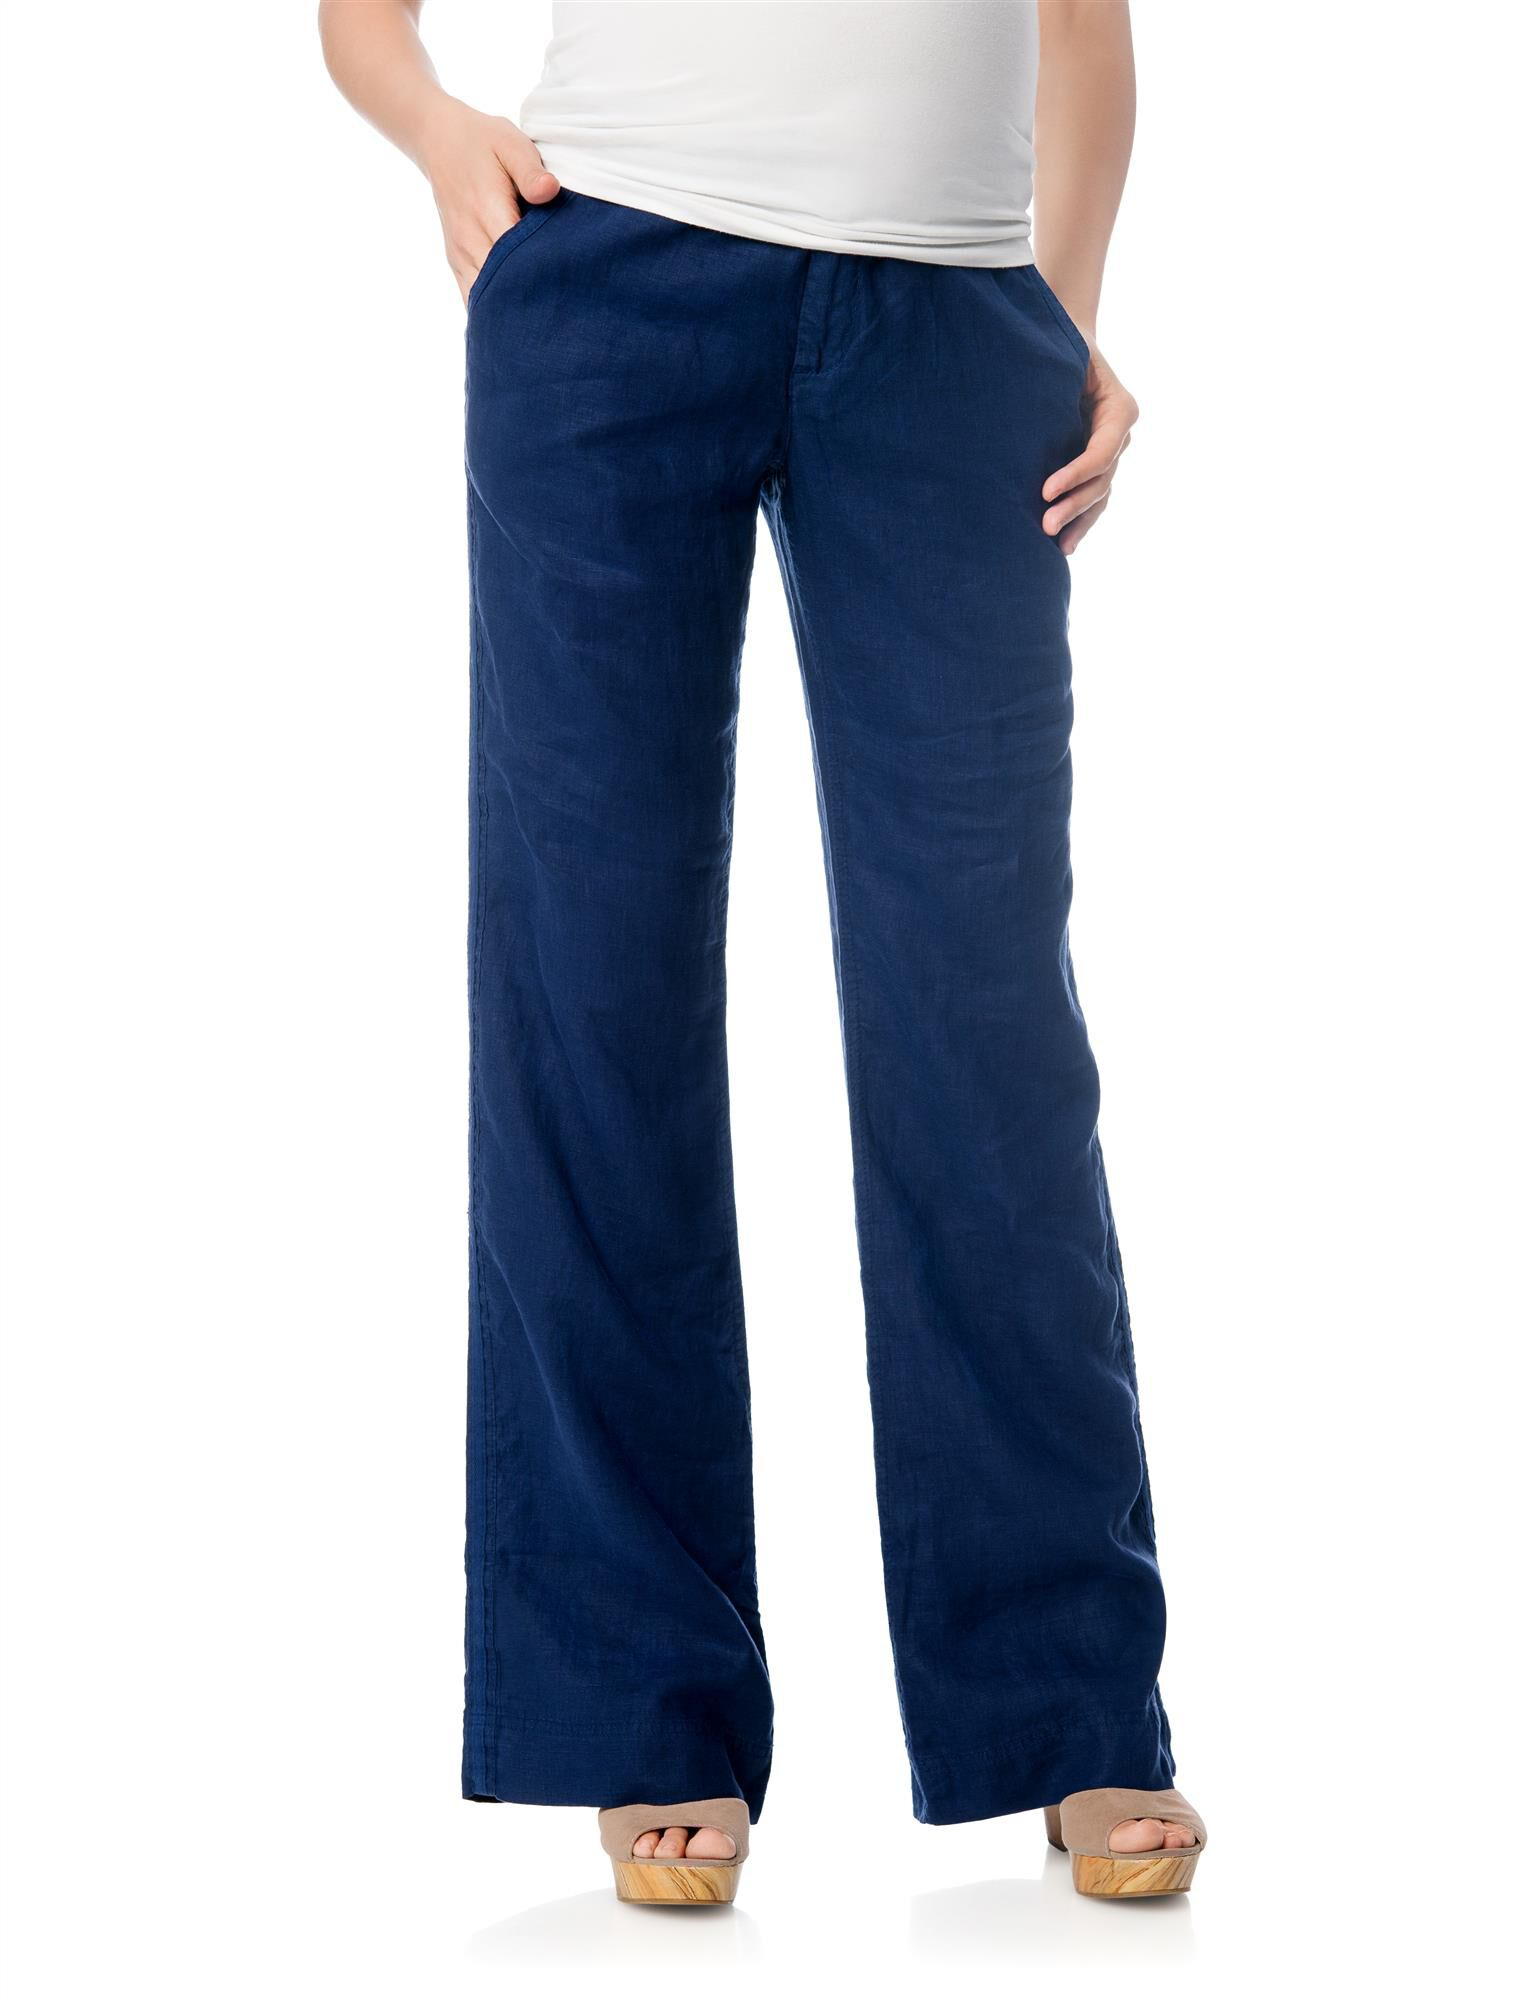 Pull On Style Linen Skinny Flare Maternity Pants